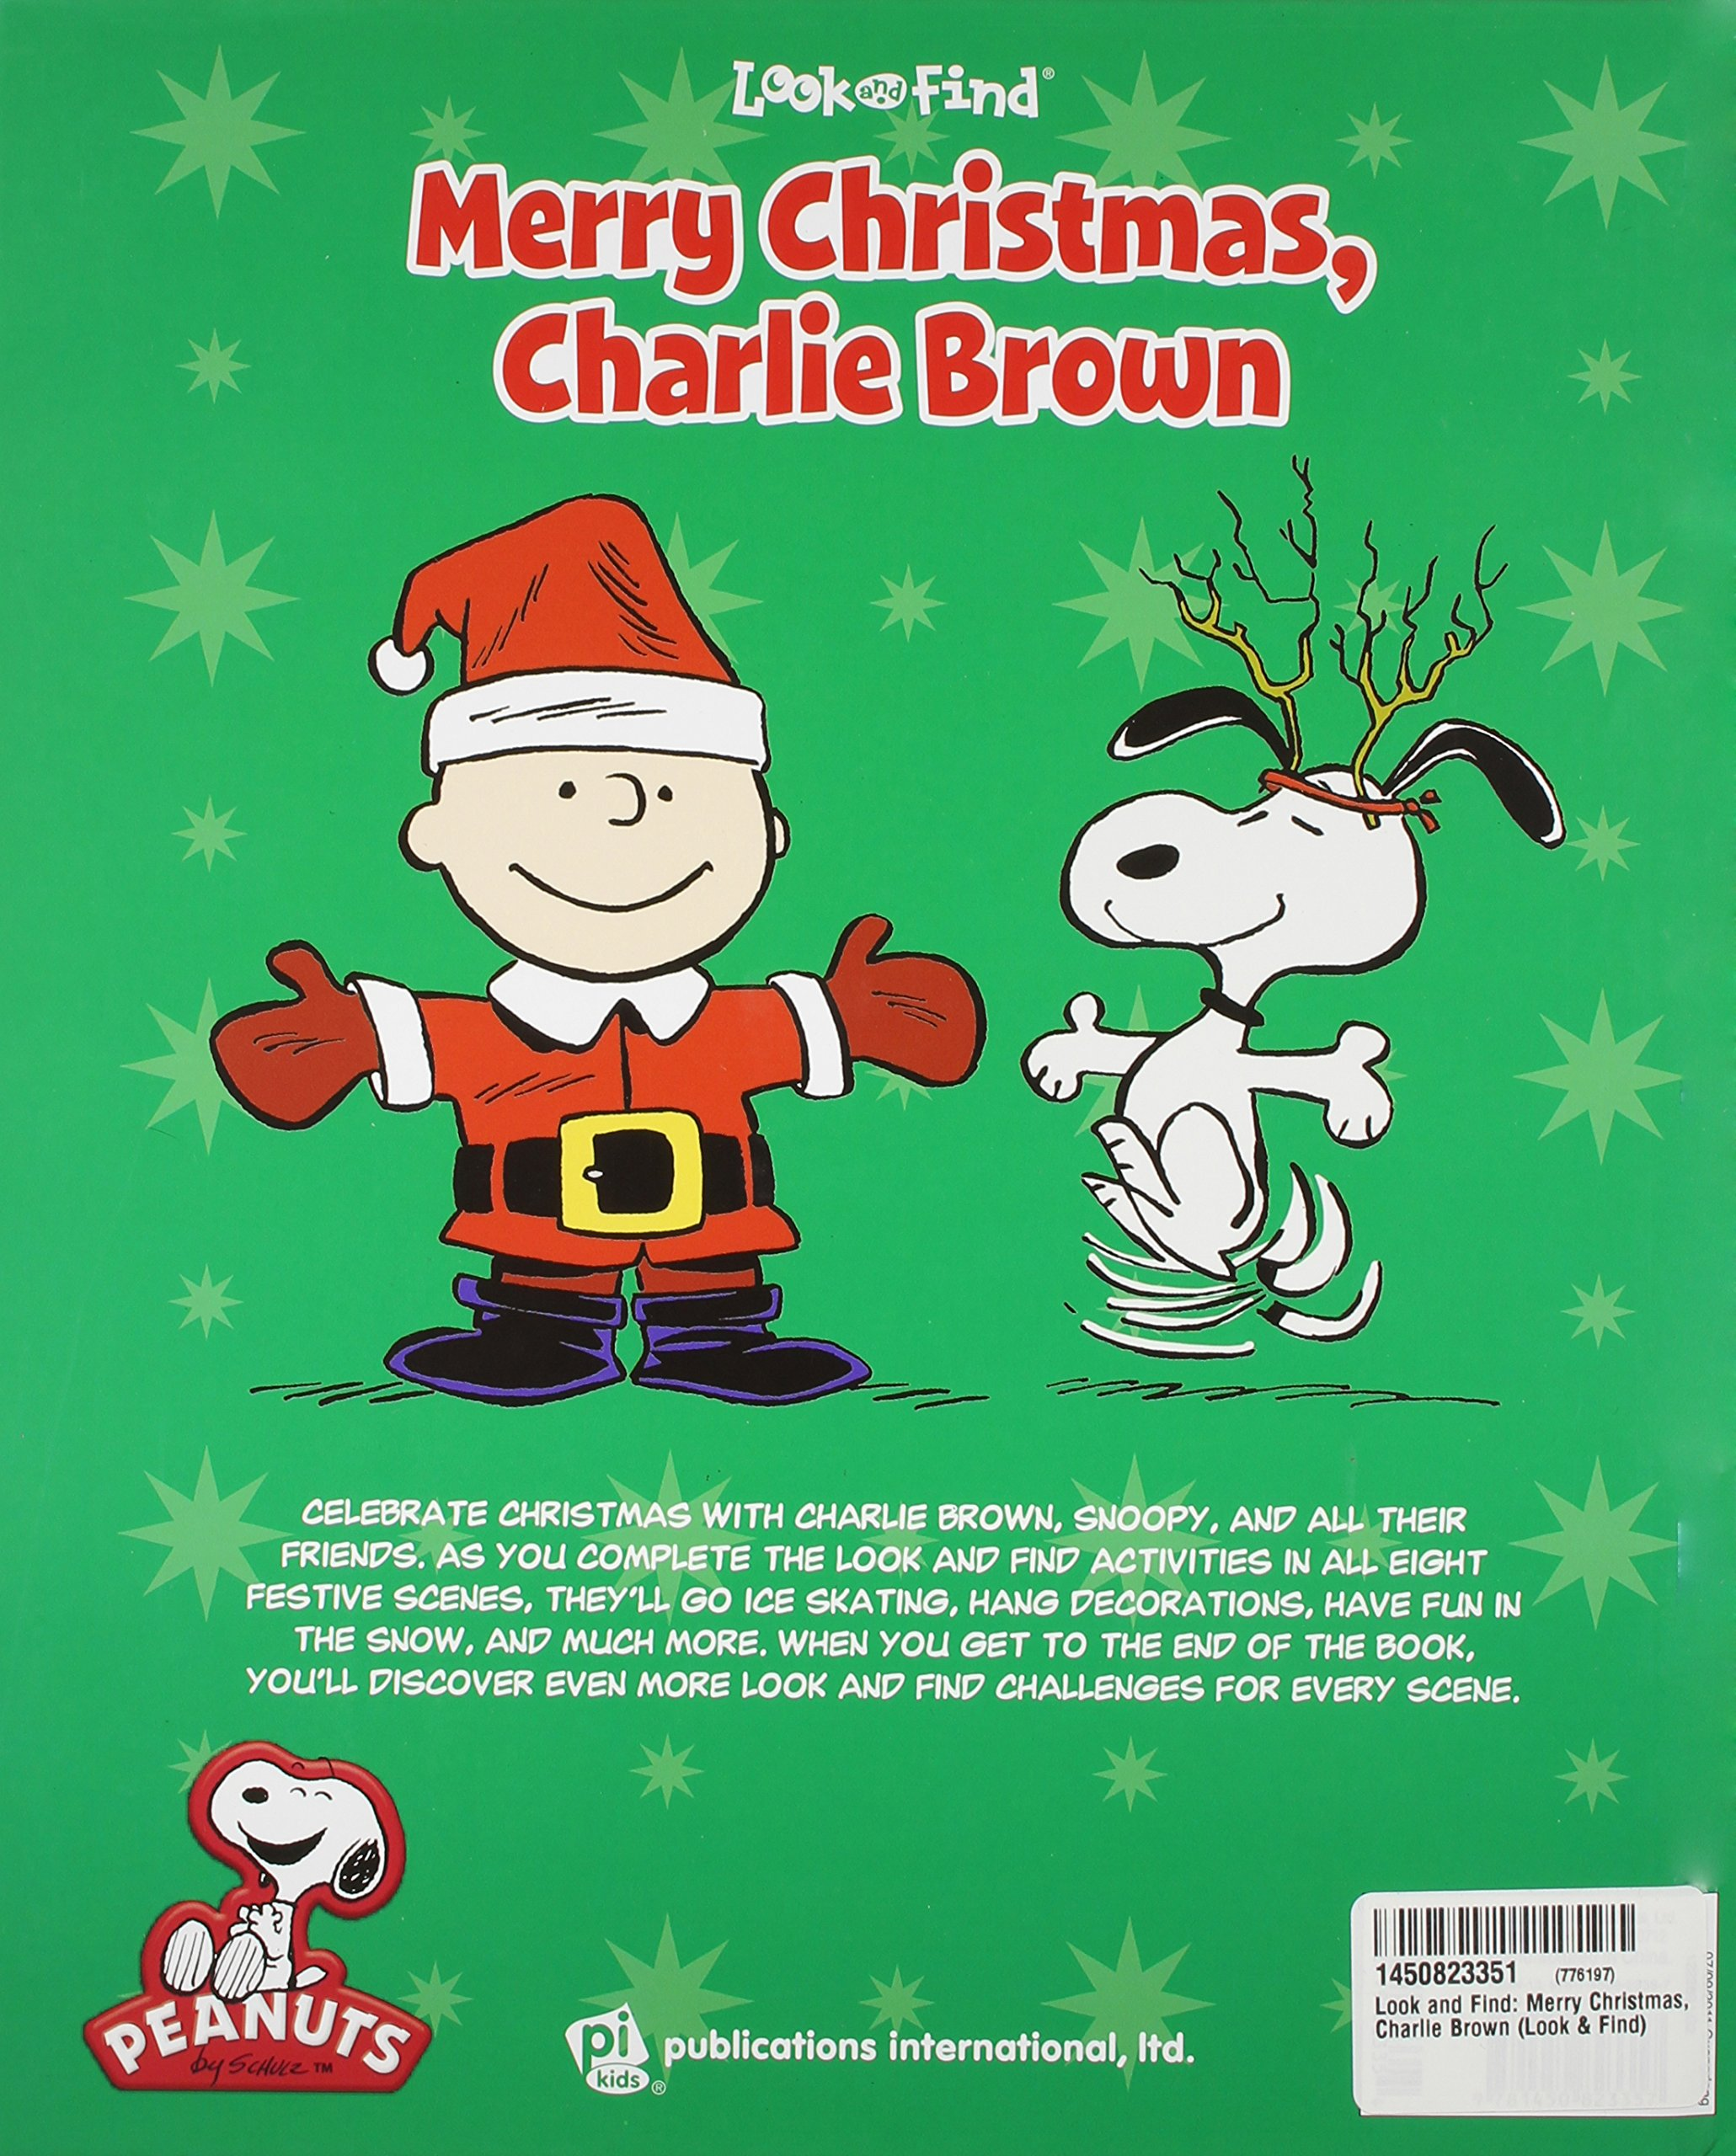 peanuts merry christmas charlie brown look and find 9781450823357 look find charles m schulz creative associates 9781450823357 amazoncom books - Snoopy Merry Christmas Images